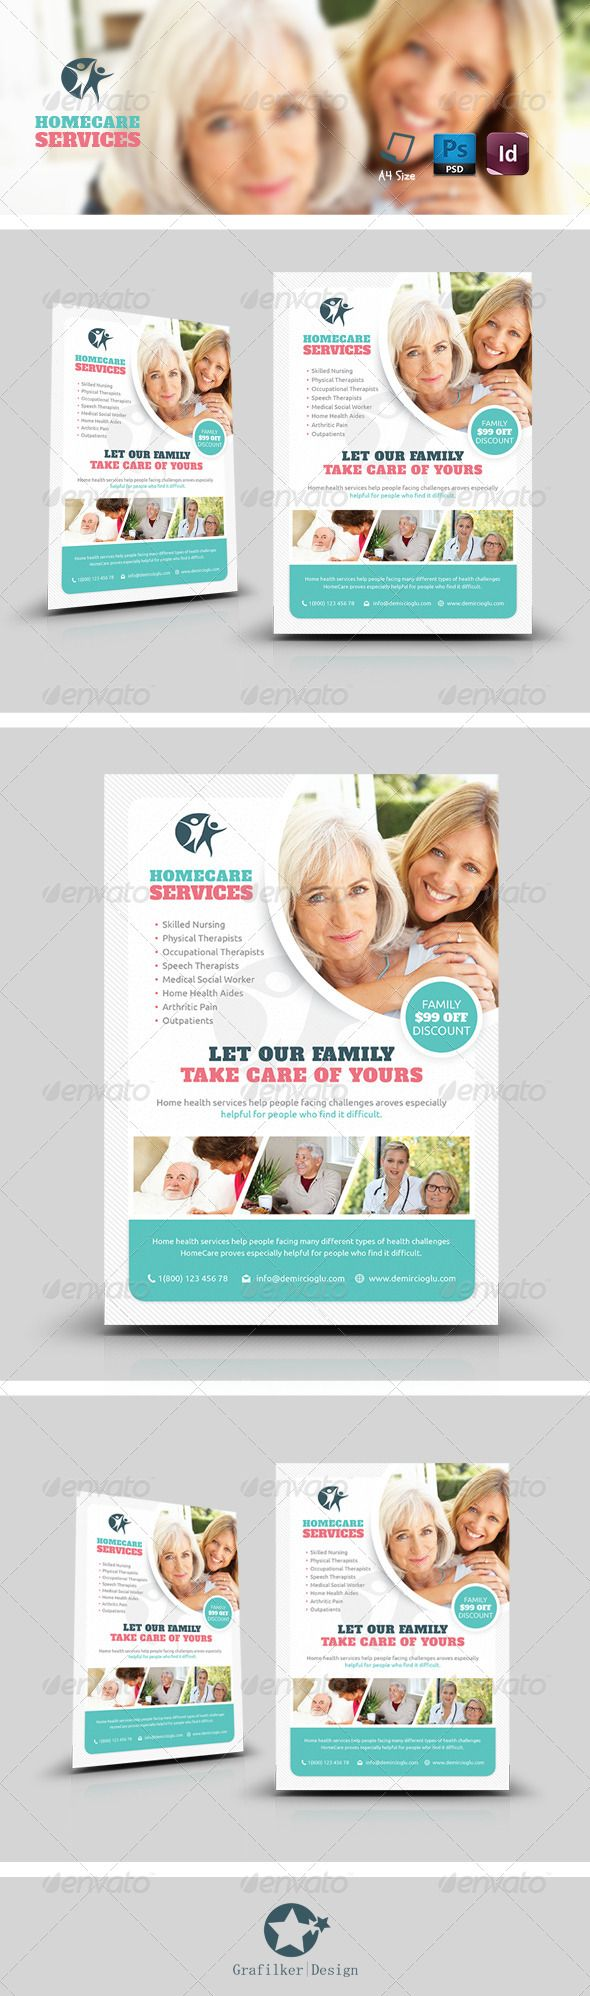 Home Care Flyer Templates, Alzheimer's, aid, banners, bathing, cancer, care, disabled, doctor, dressing, errands, grafilker, grandma, grandpa, health, hospital, incontinence, infirm, life, light housekeeping, meal preparation, medical, medication, nurses, nursing, nursing home, reminders, respite, surgeon, the elderly, therapy